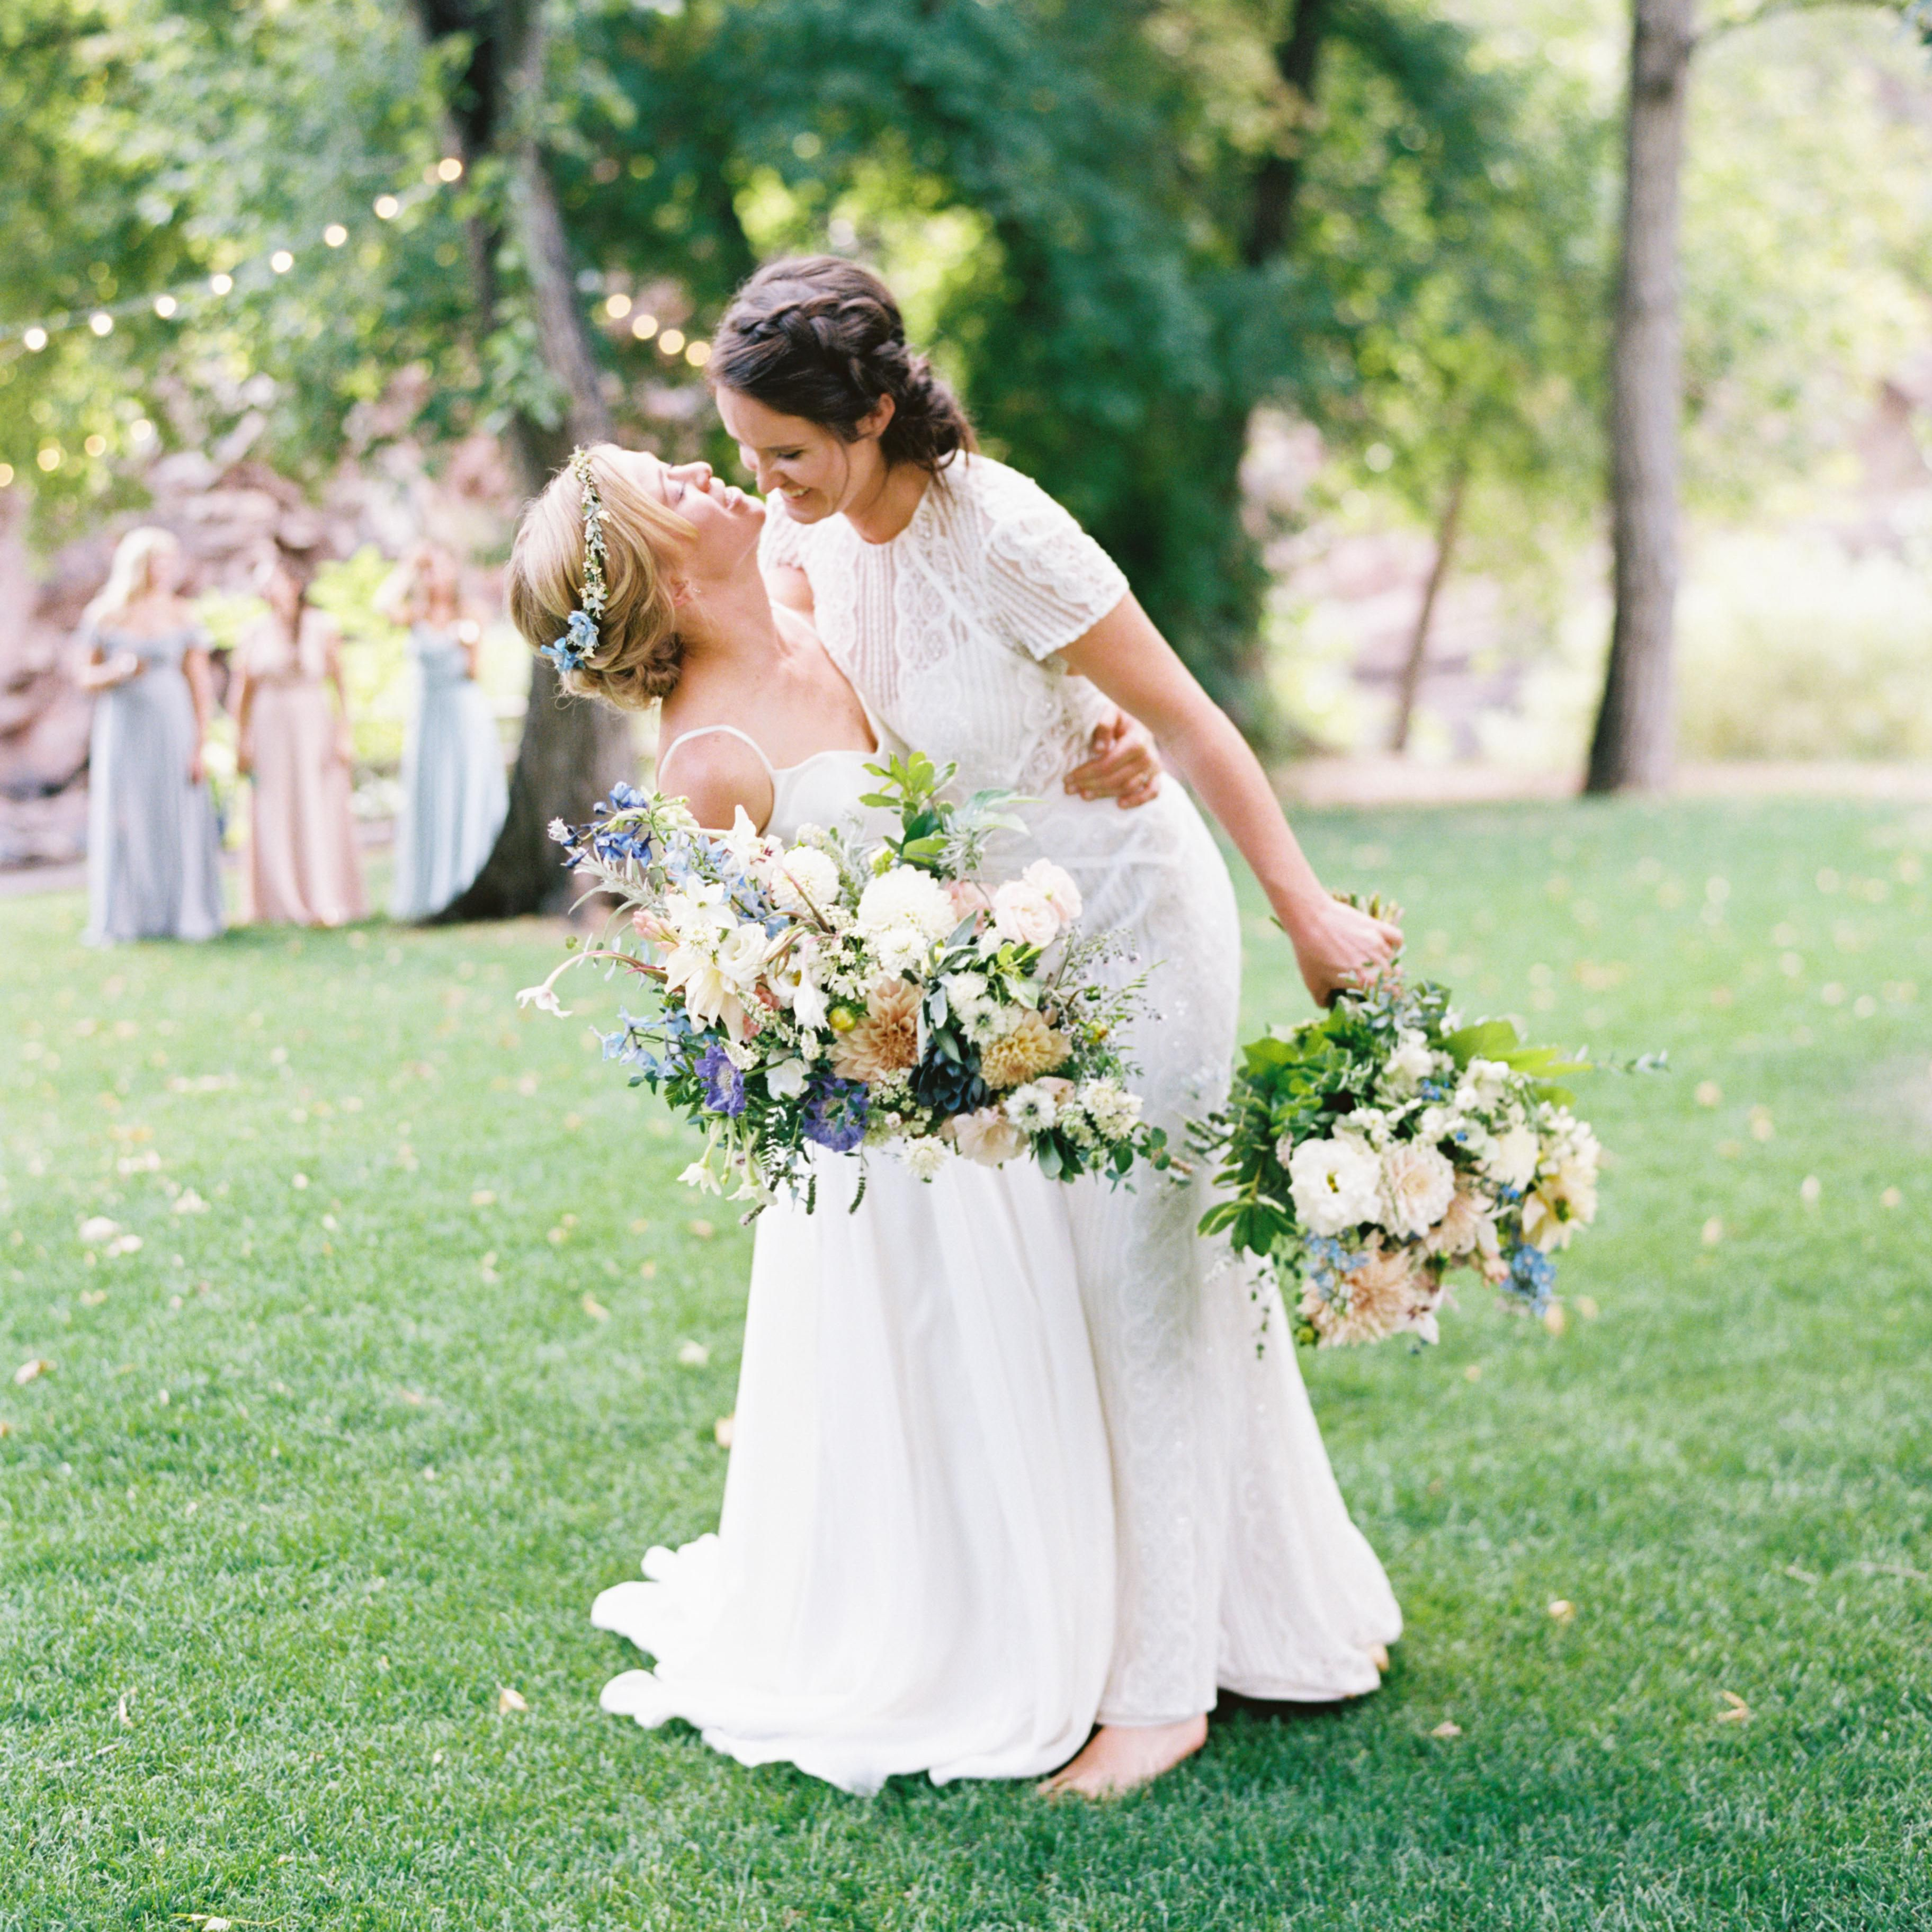 39 Same Sex Wedding Photos That Will Give You All The Feels During